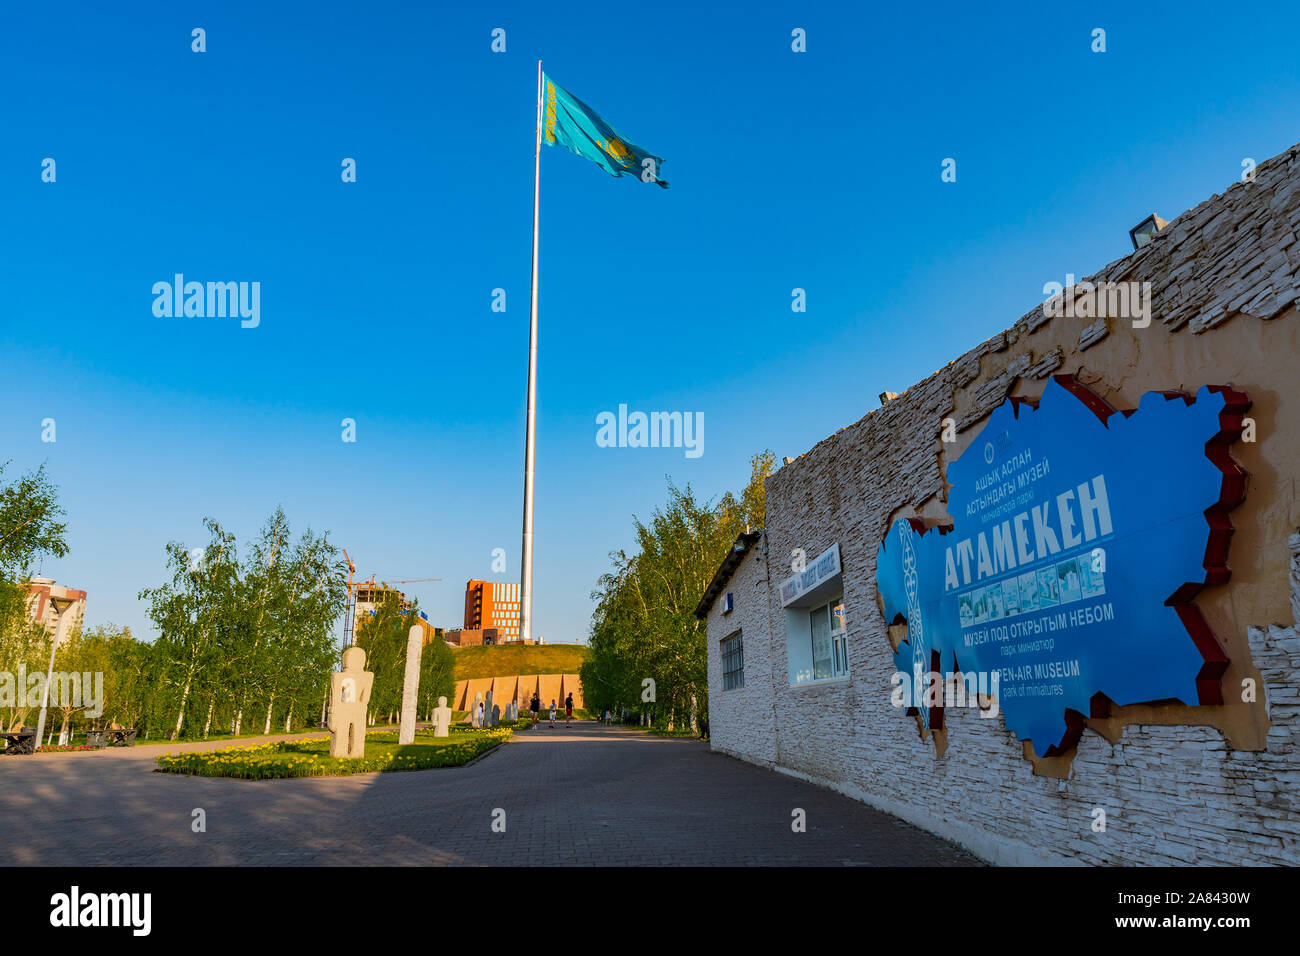 Nur-Sultan Astana Central City Tsentralnyy Gorodskoy Park View of Atameken Museum and Waving Kazakhstan Flag on a Sunny Blue Sky Day Stock Photo